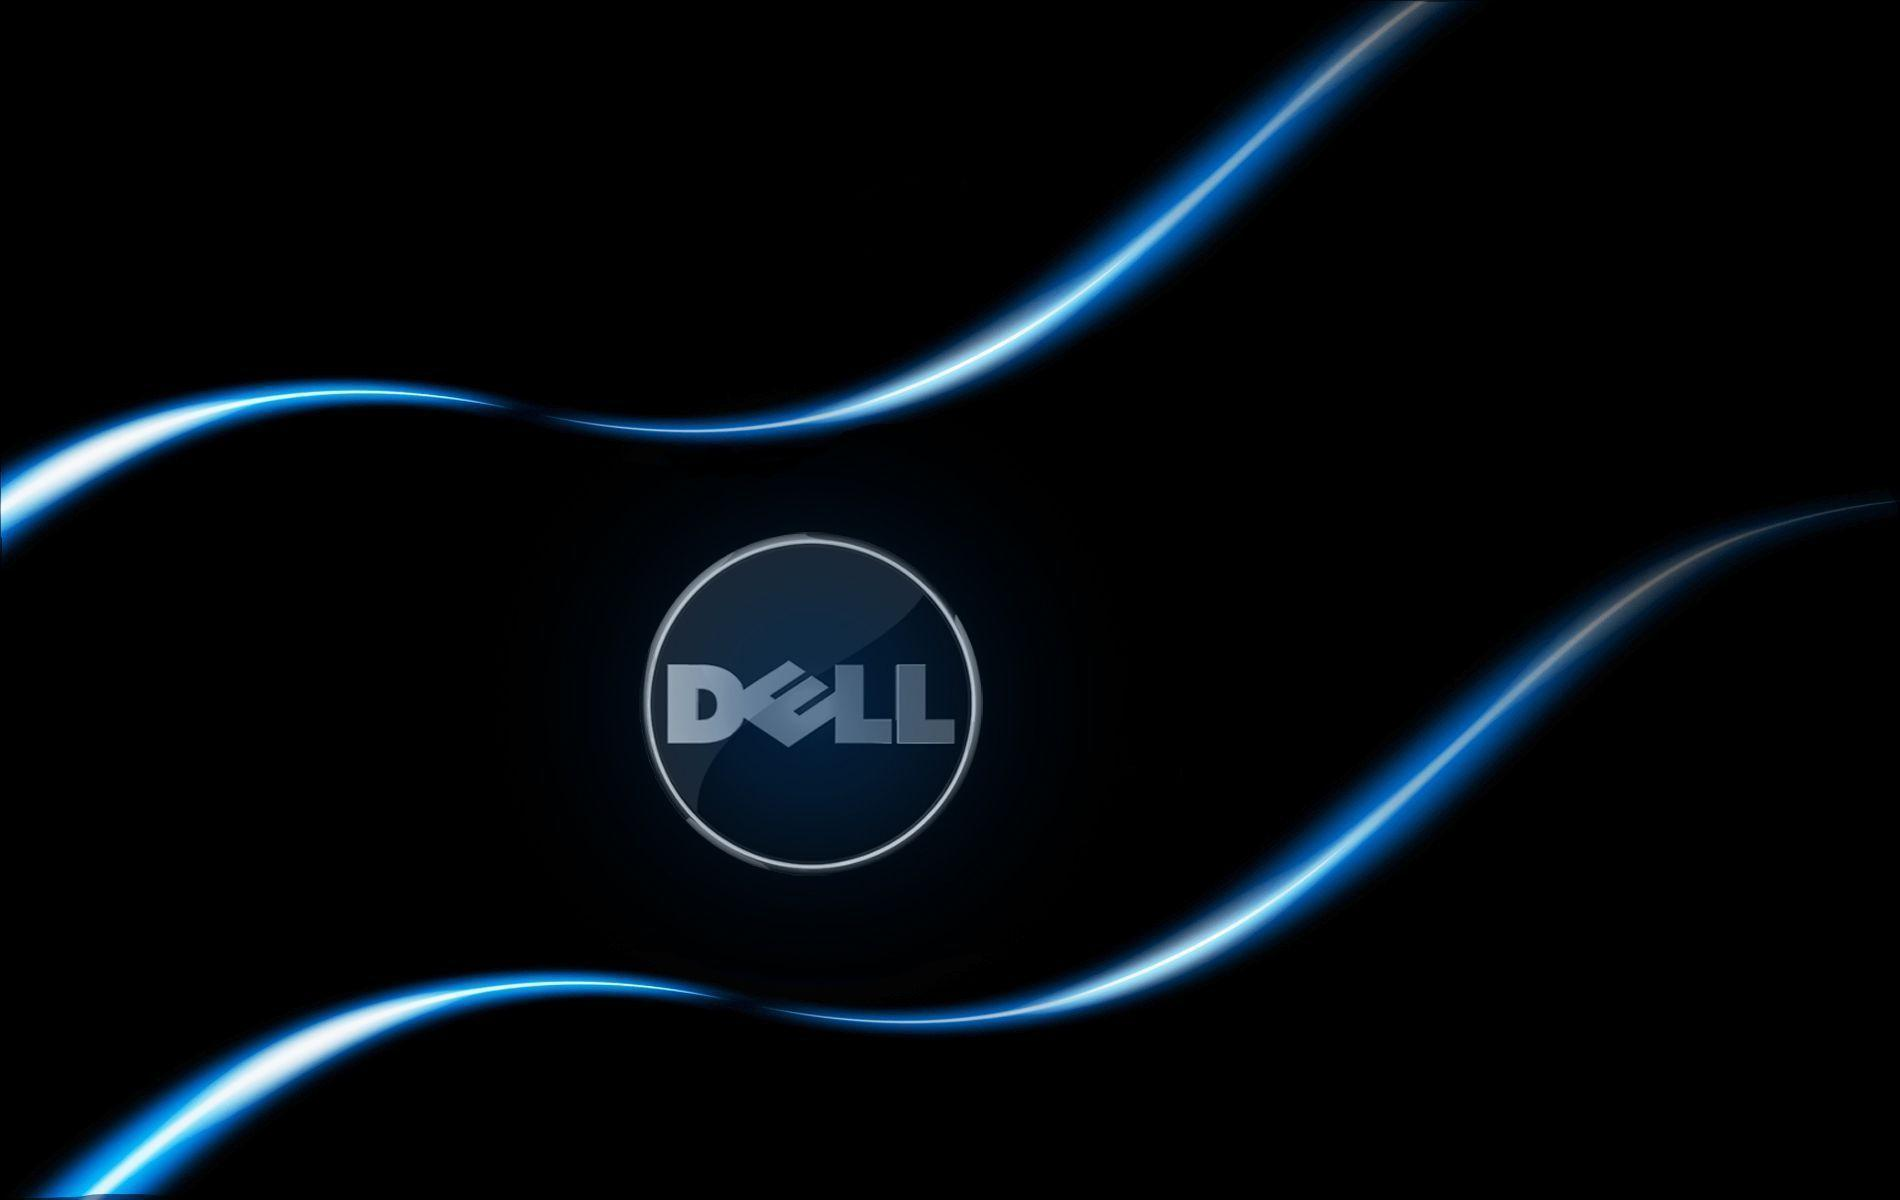 dell xps wallpaper own - photo #2